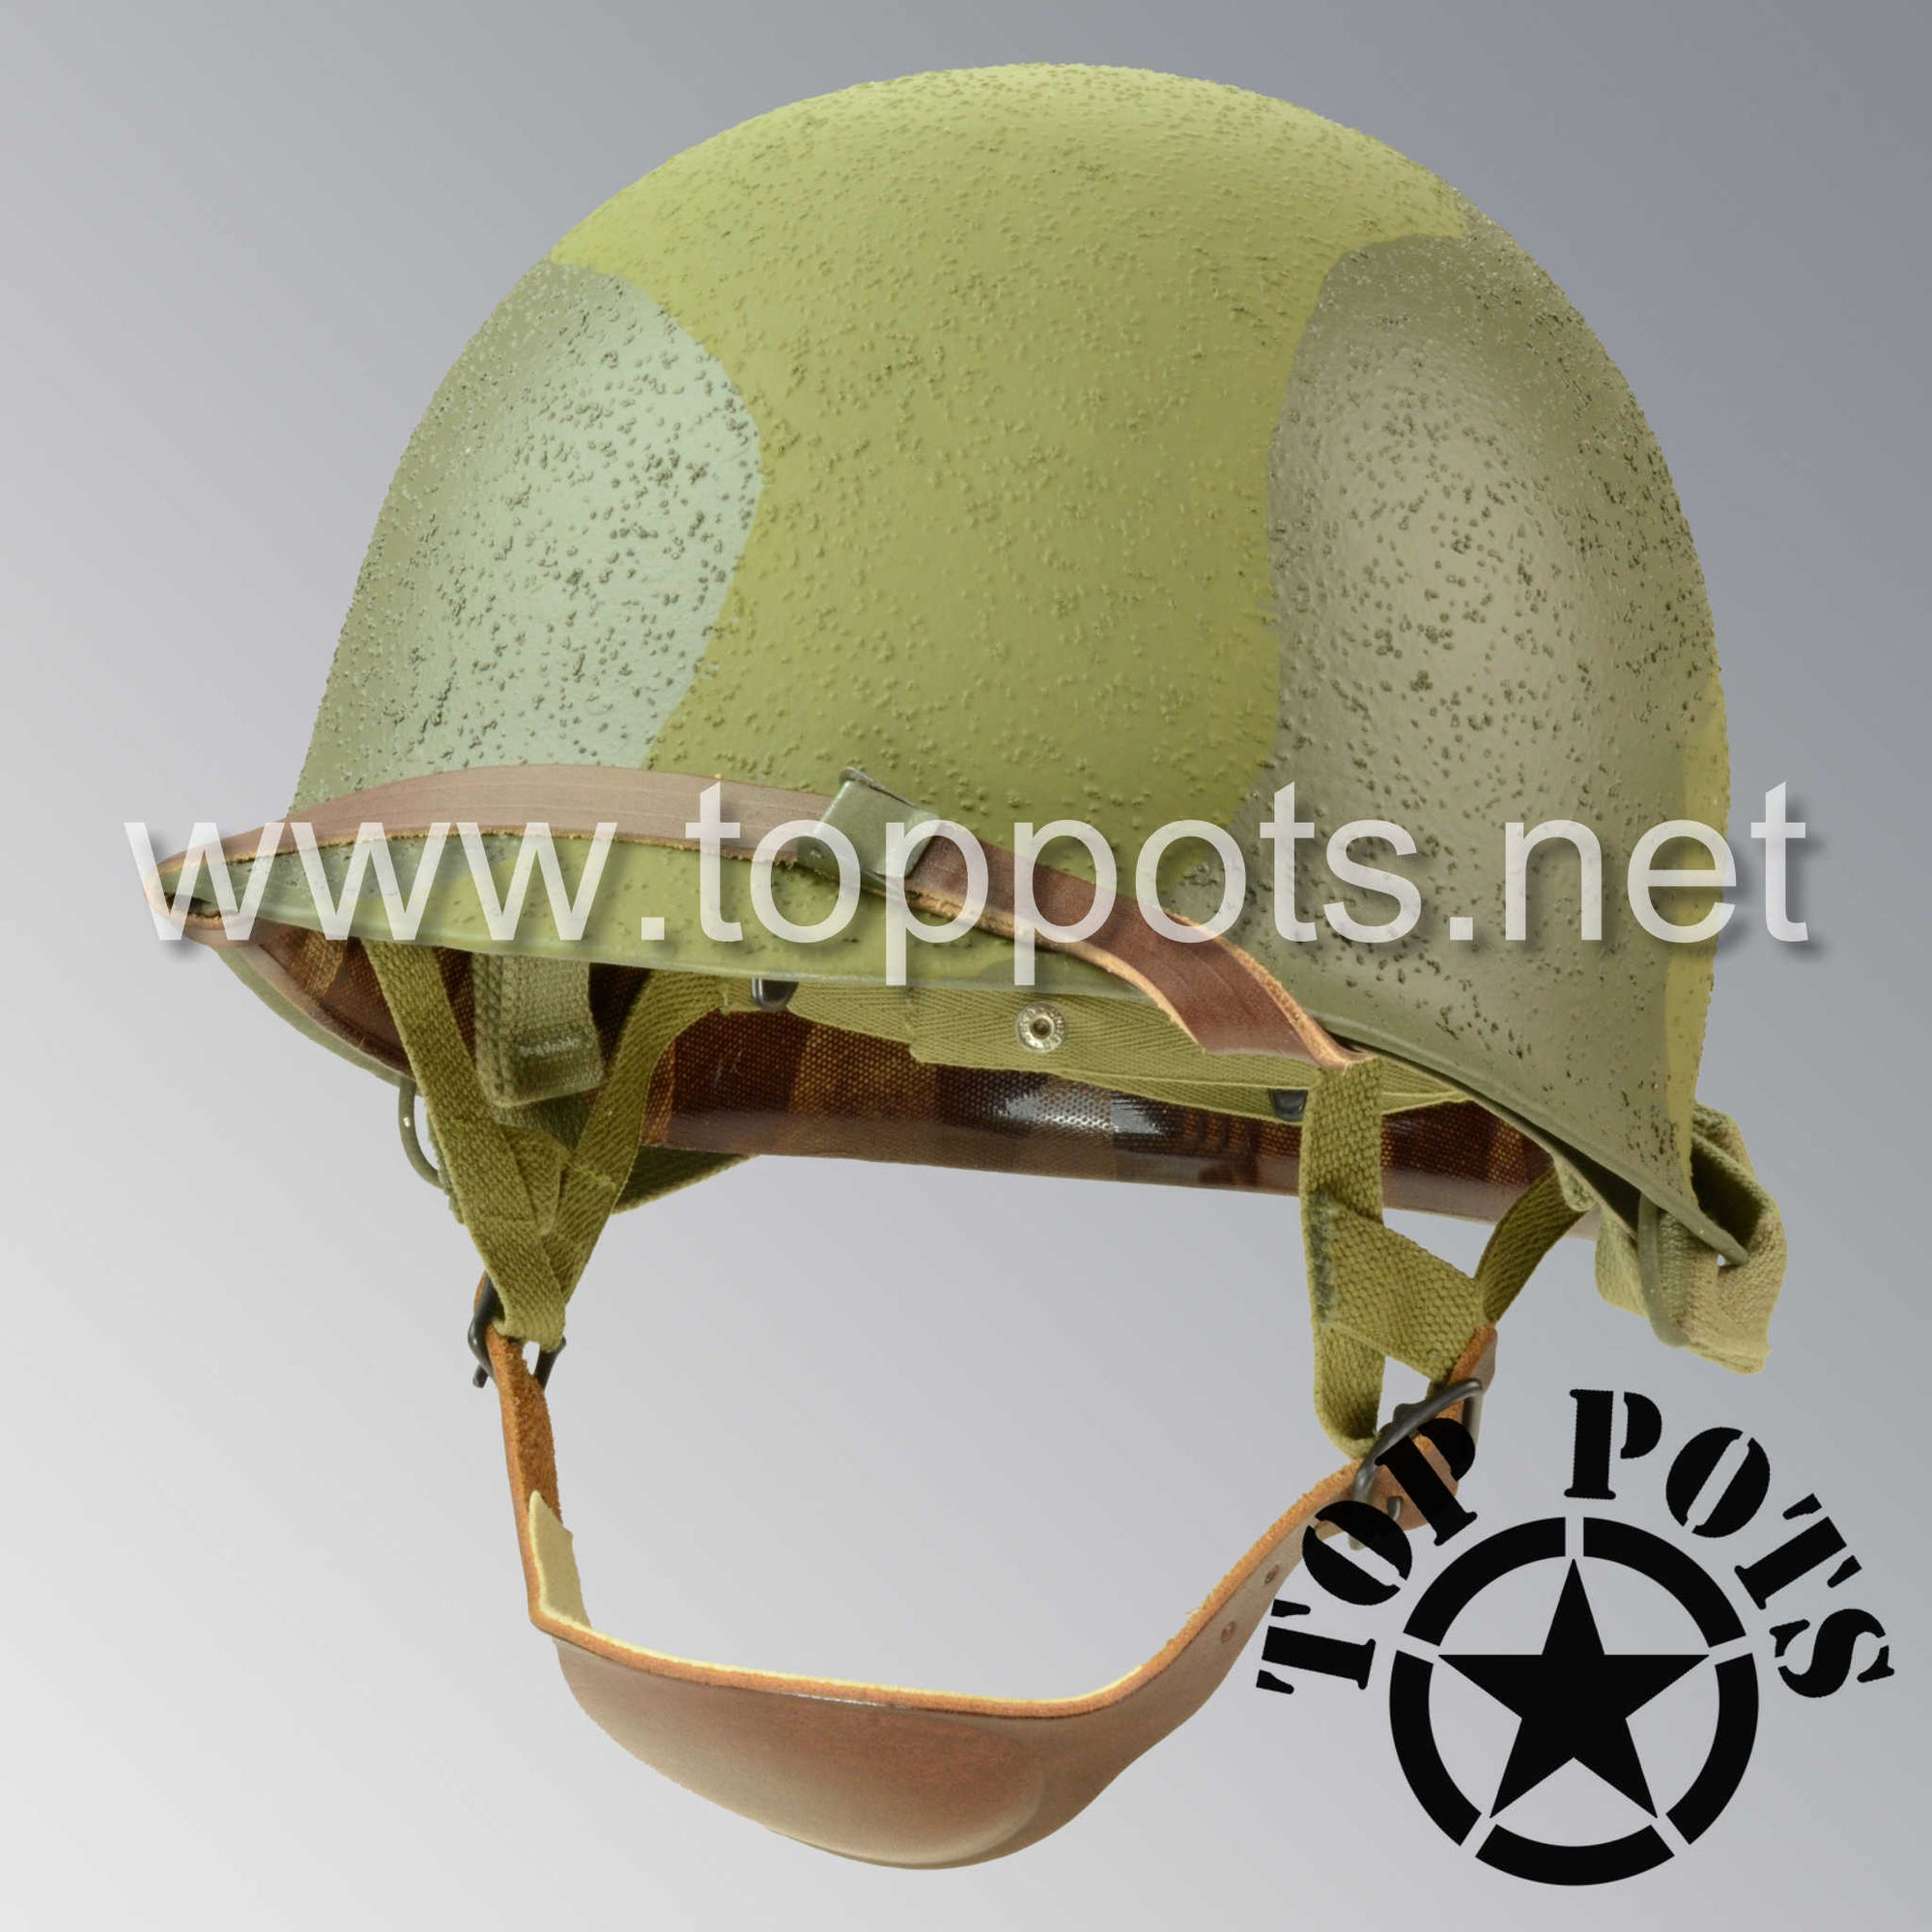 Image 1 of WWII US Army Restored Original M2 Paratrooper Airborne Helmet D Bale Shell and Liner with 82nd Airborne Pathfinder Camouflage Emblem